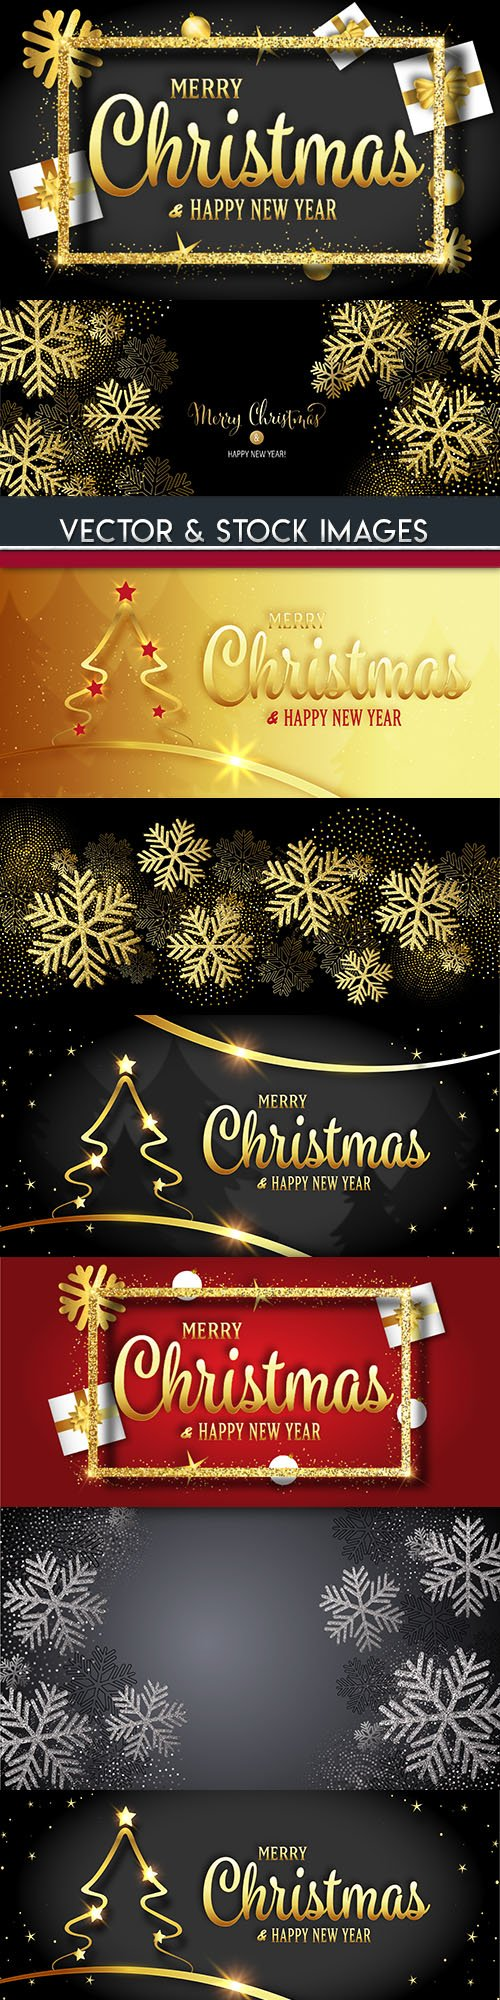 Merry Christmas and New Year background decorative 9